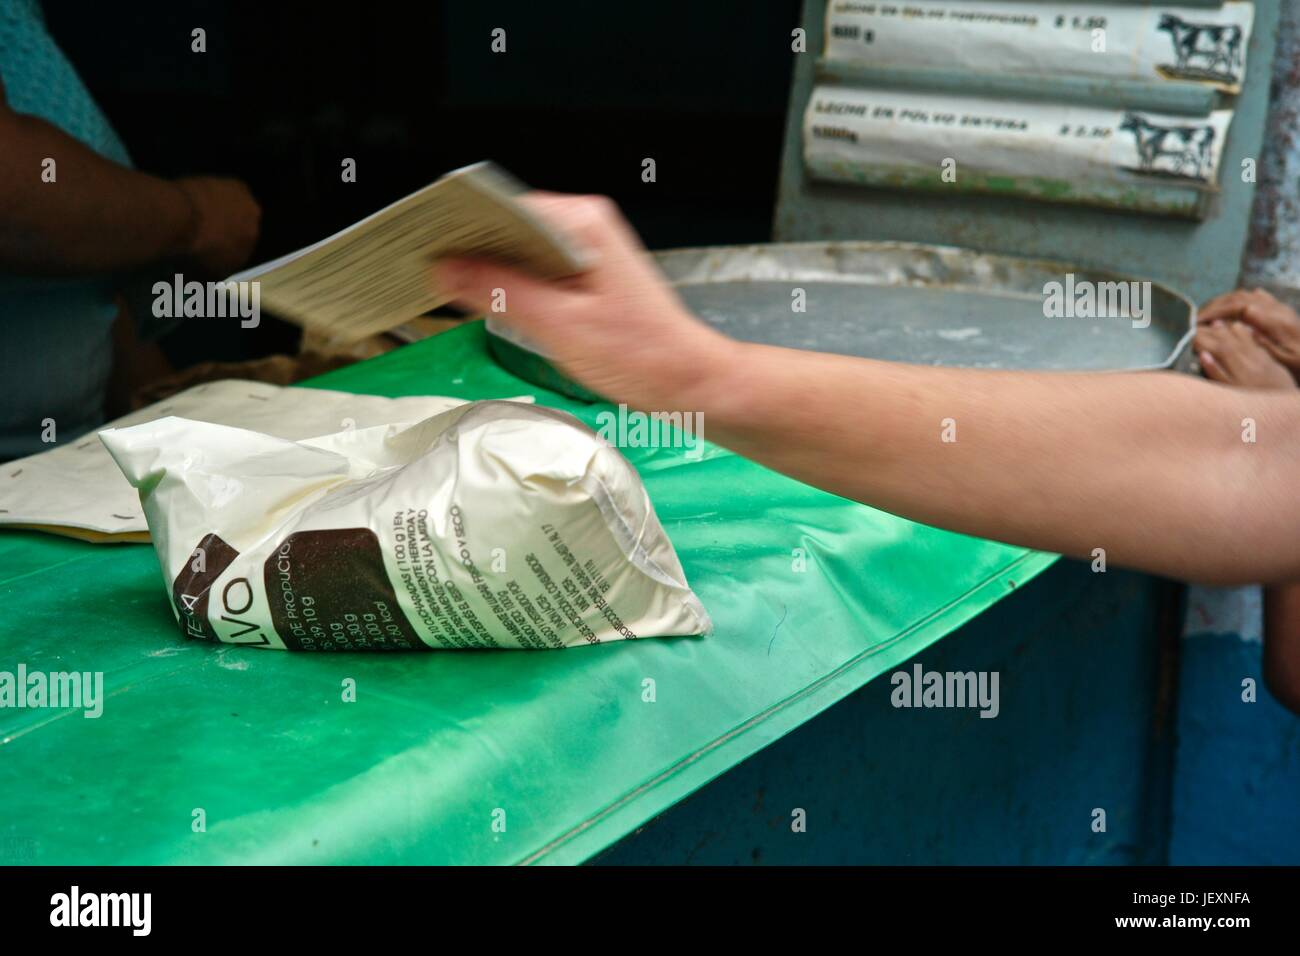 A Cuban presents a ration card to obtain basic products at a ration shop. - Stock Image